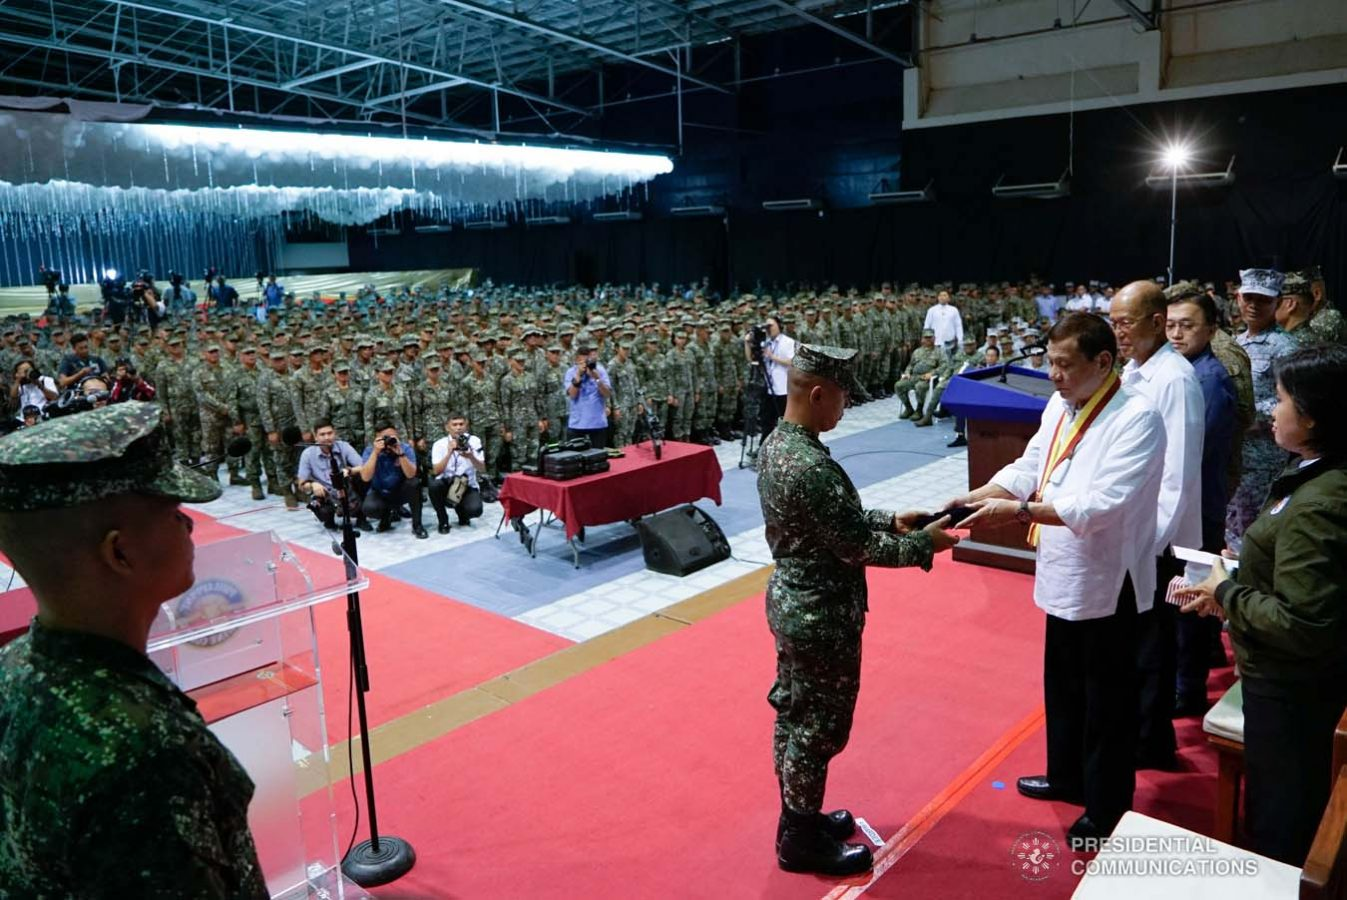 President Rodrigo Roa Duterte confers the Order of Lapu-Lapu Rank of Kamagi on one of the Philippine Marine Corps (PMC) personnel during his visit to the PMC headquarters at Fort Bonifacio in Taguig City on January 13, 2020. The President honored the PMC personnel who took part in the liberation of Marawi City from the terrorists. KING RODRIGUEZ/PRESIDENTIAL PHOTO